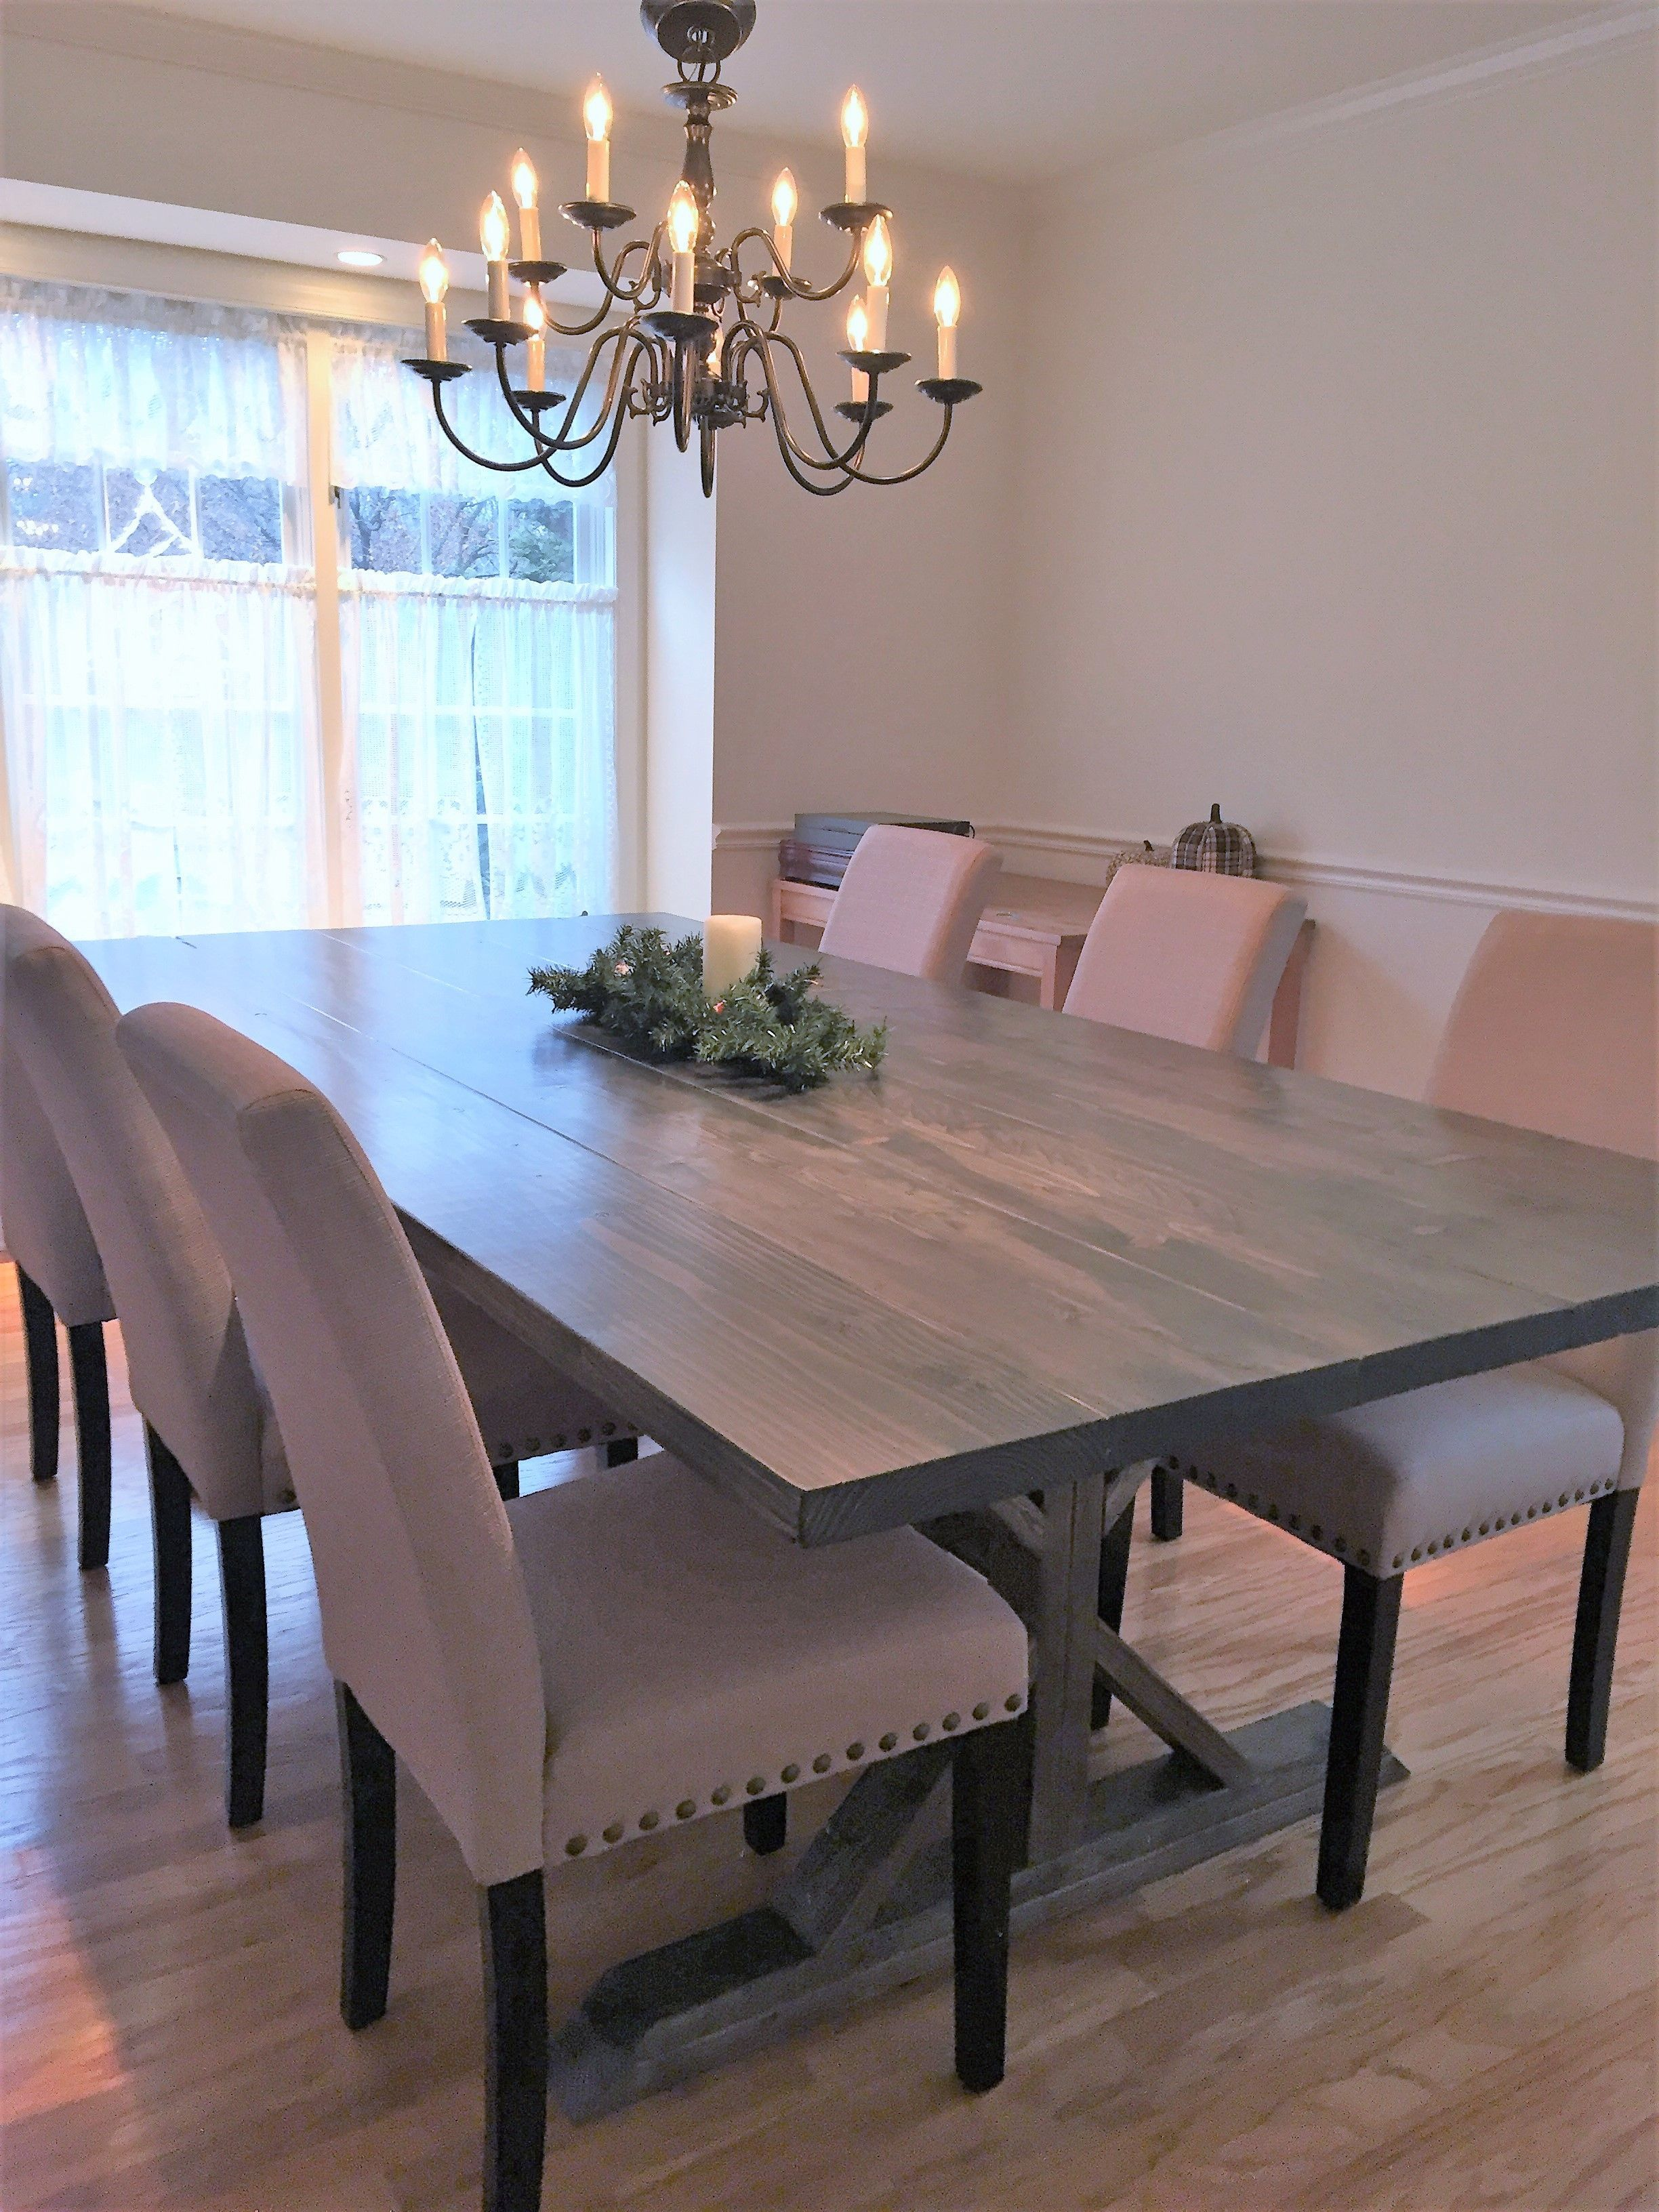 Custom made rustic farm trestle dining table with images